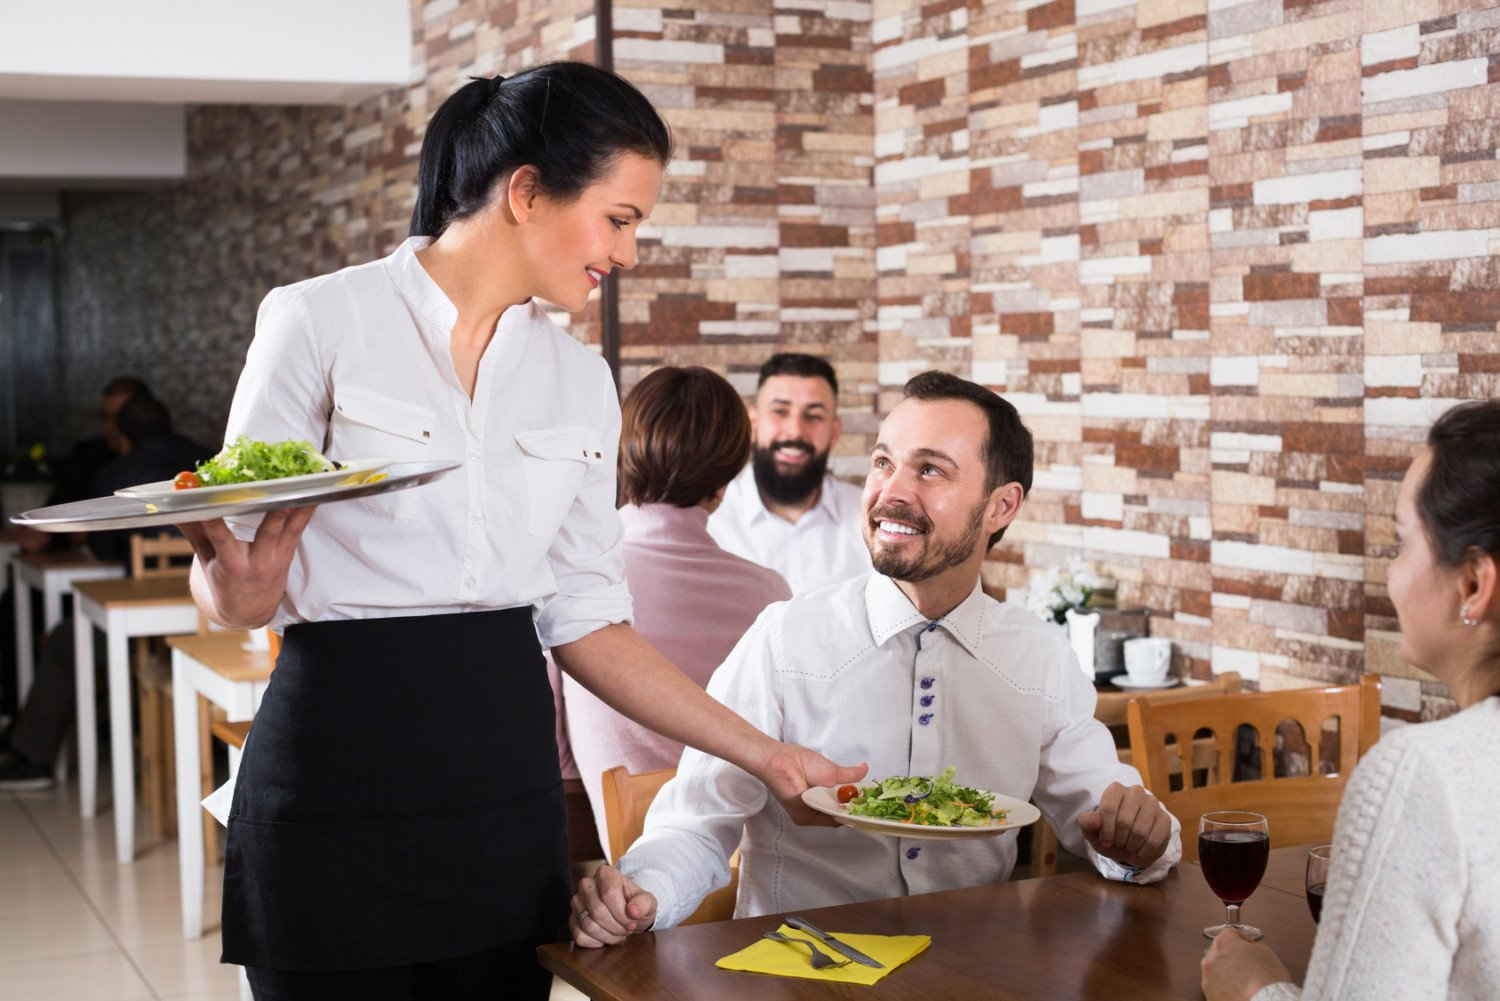 Helping Restaurants Navigate Workplace Injuries with Nurse Triage Services